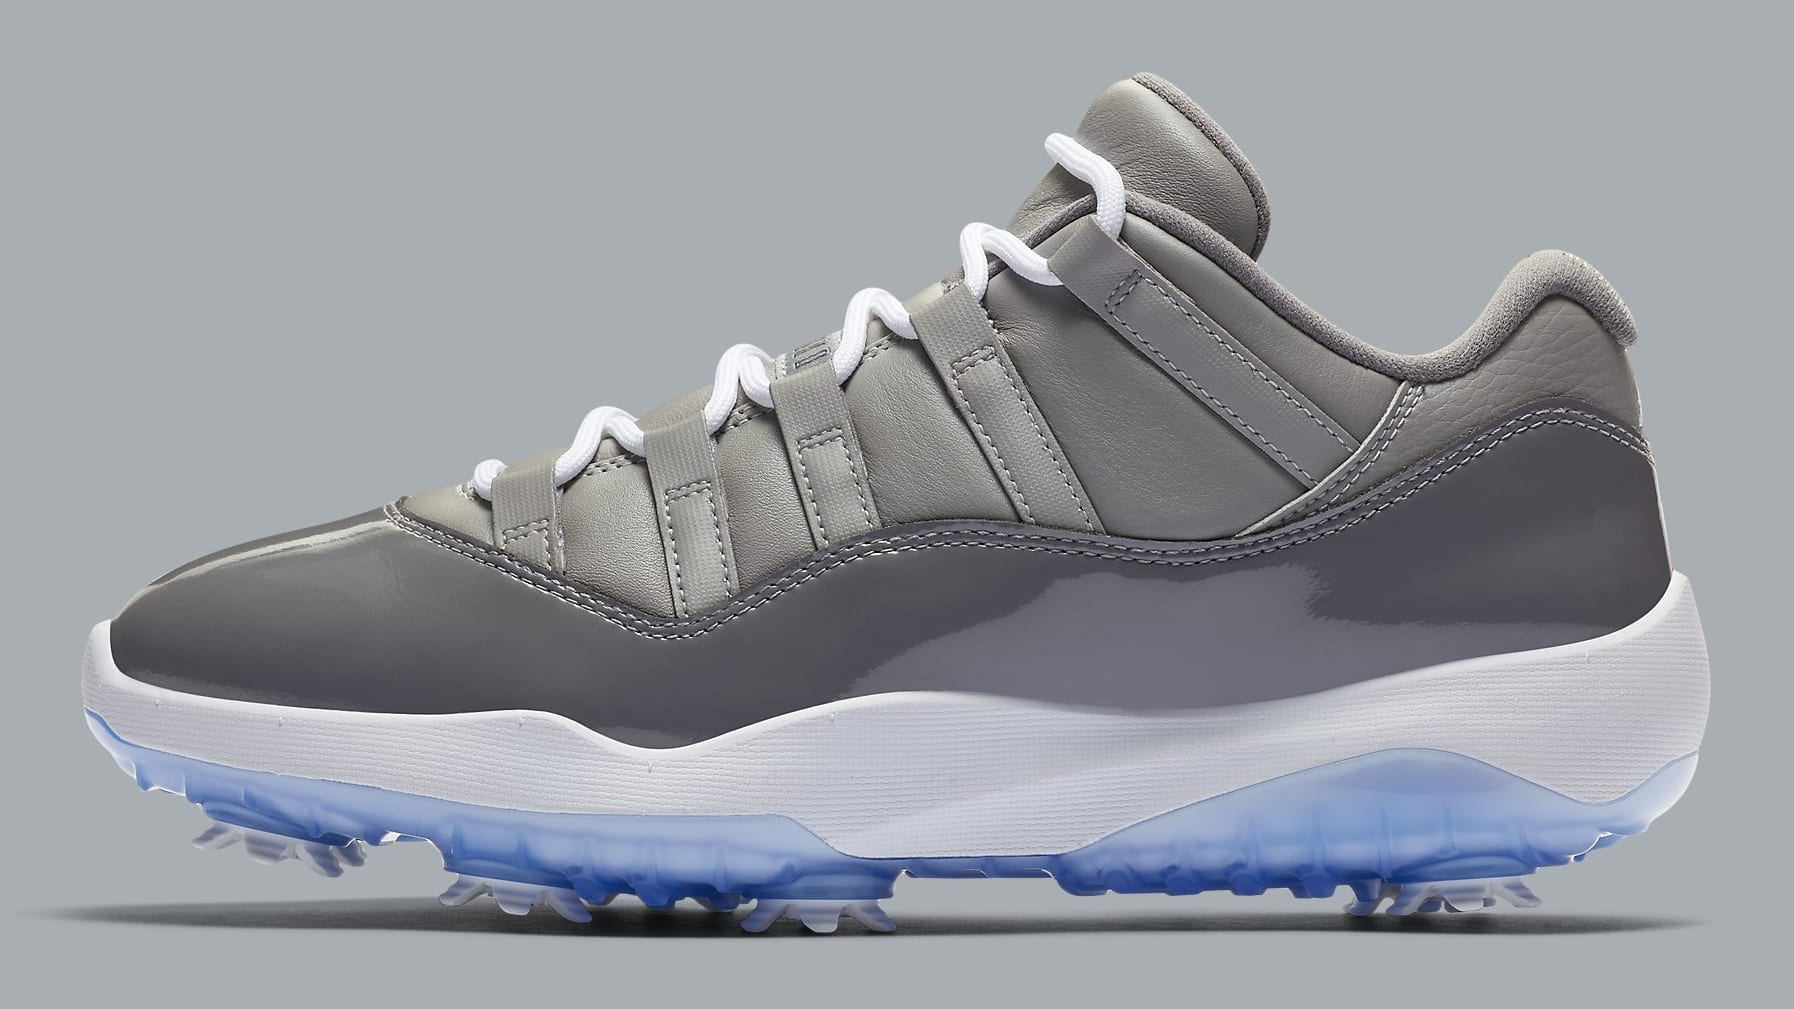 Air Jordan 11 Low Golf Cool Grey Release Date AQ0963-002 Profile